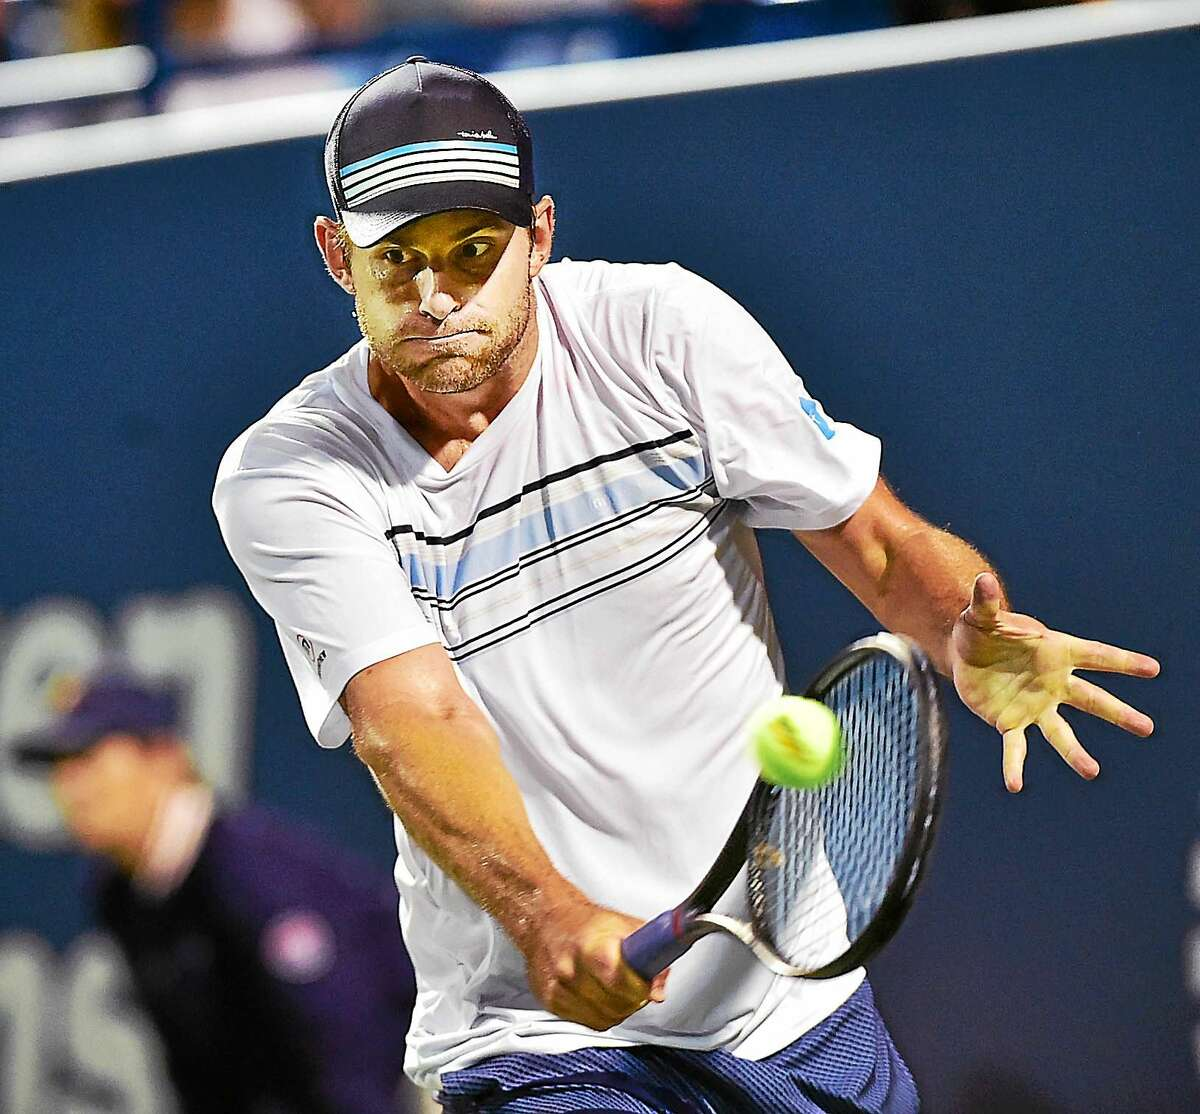 Andy Roddick lost to James Blake 7-5, 6-4 in the men's legends match on Thursday night at the Connecticut Open in New Haven.